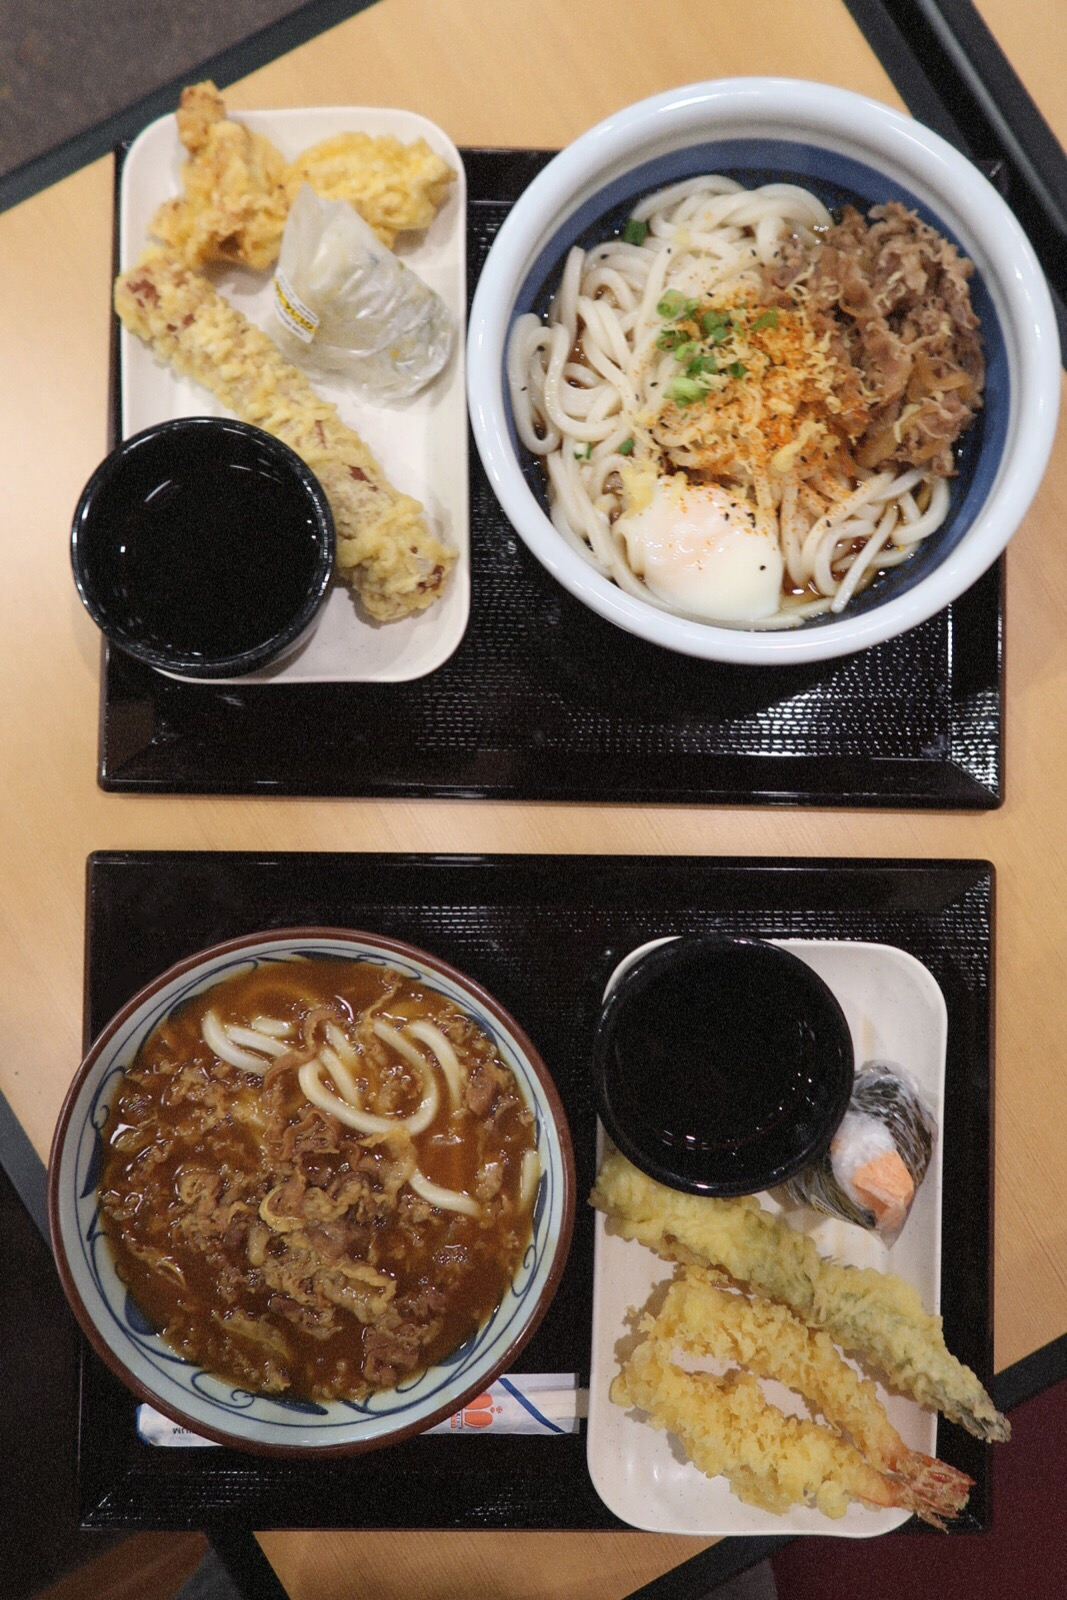 #onthetable: Marugame Udon Curry Noodle Udon bowl, Nikutama Udon noodle bowl, shrimp tempura, and musubi.